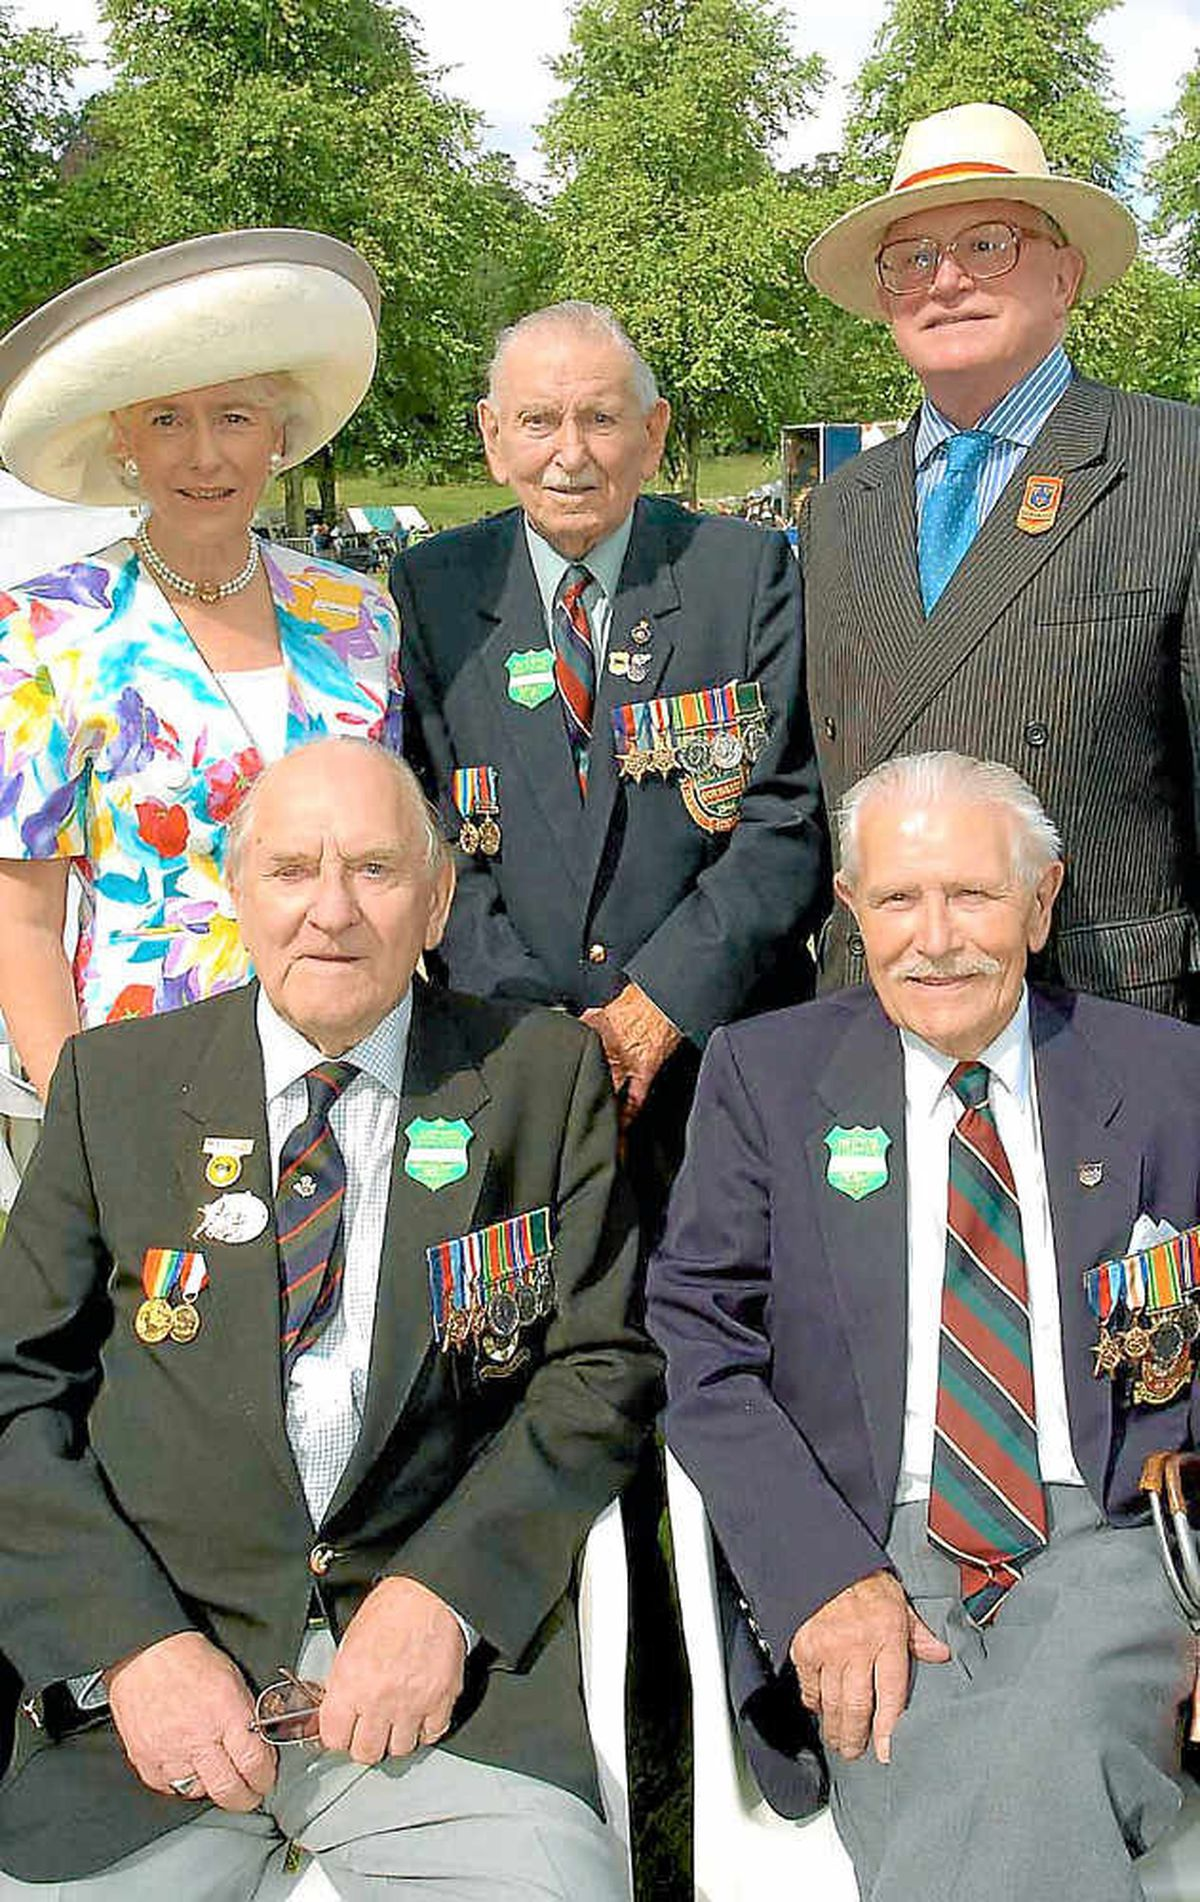 D-Day veterans, including Mr Langford, with Shropshire Horticultural Society president Charles Roger-Coltman and his wife Tessa at the Flower Show